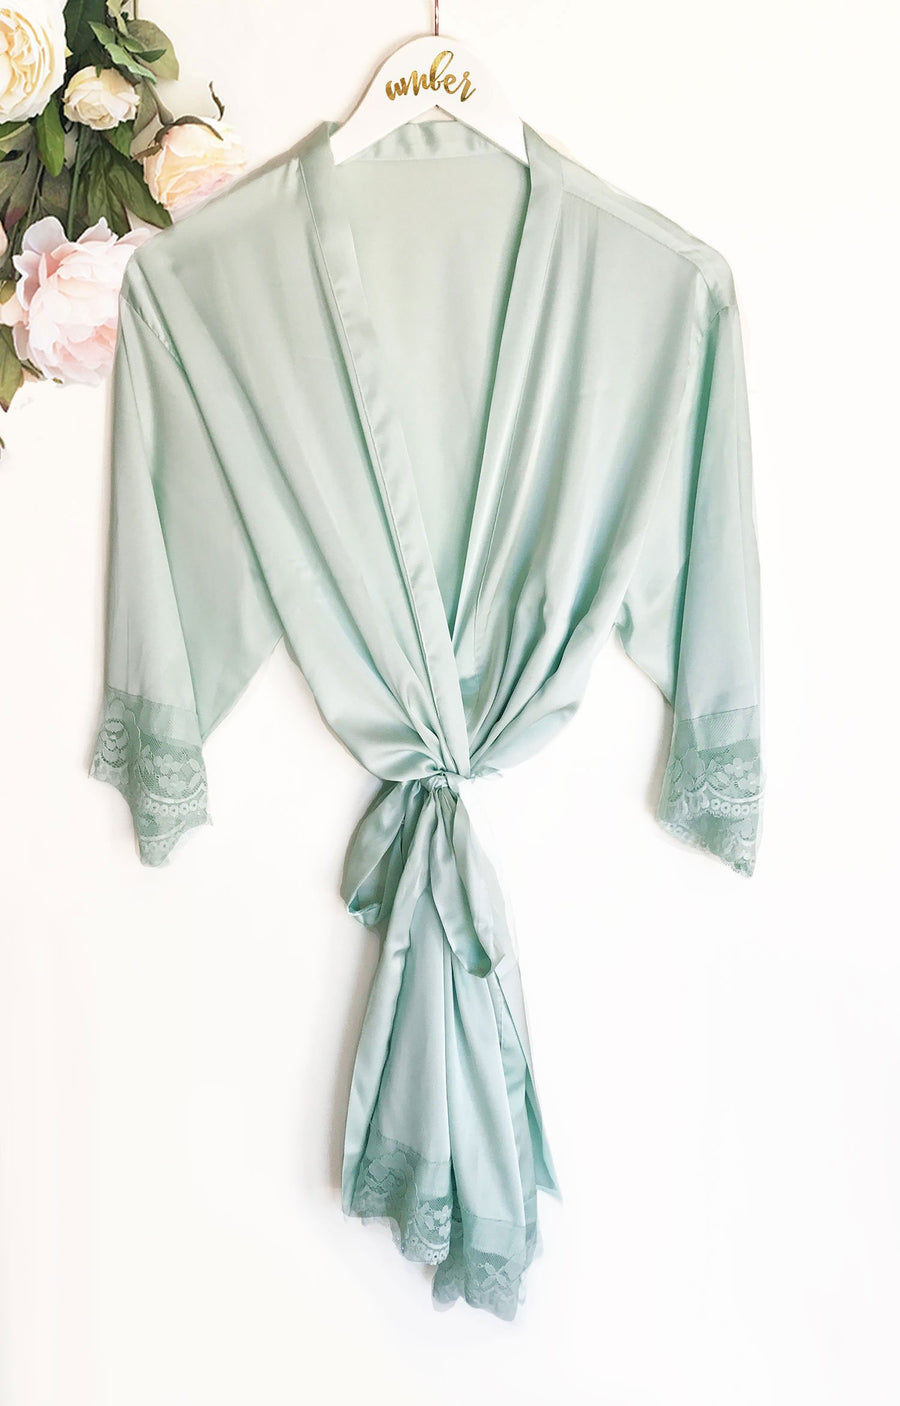 Satin Lace Robe Bridal Party Gift Blush